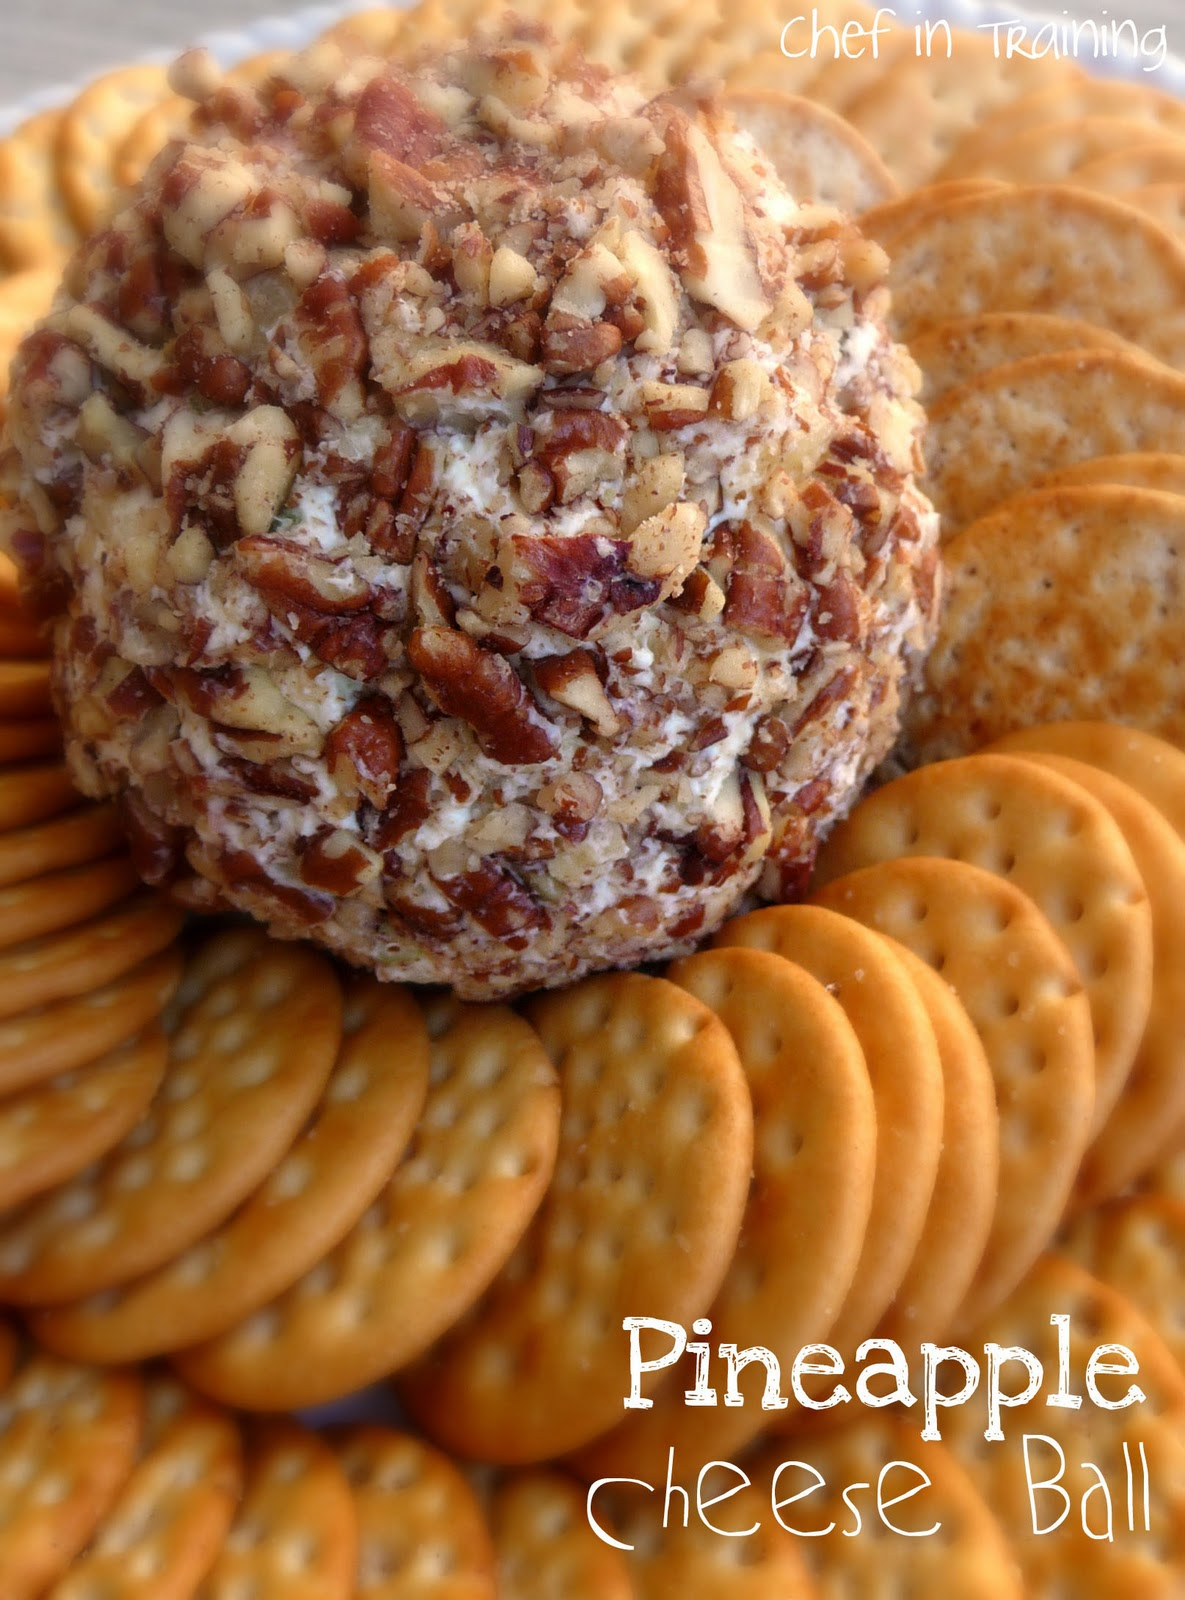 Chef in Training: Pineapple Cheese Ball